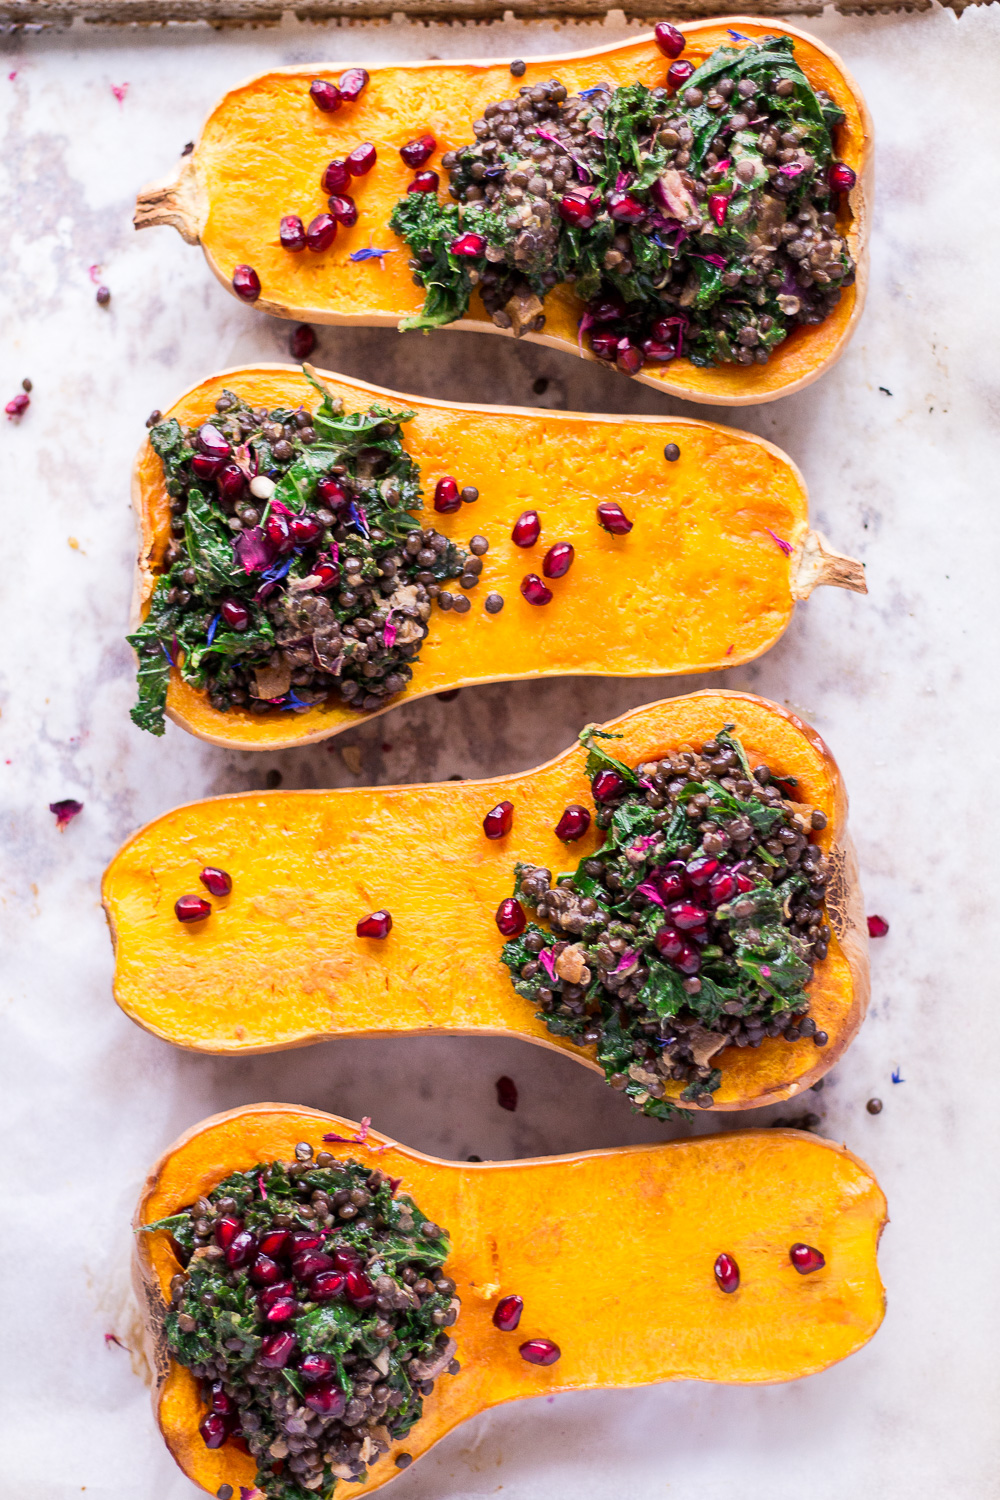 Christmas menu entrée: Holiday Stuffed Butternut Squash with Lentils and Kale